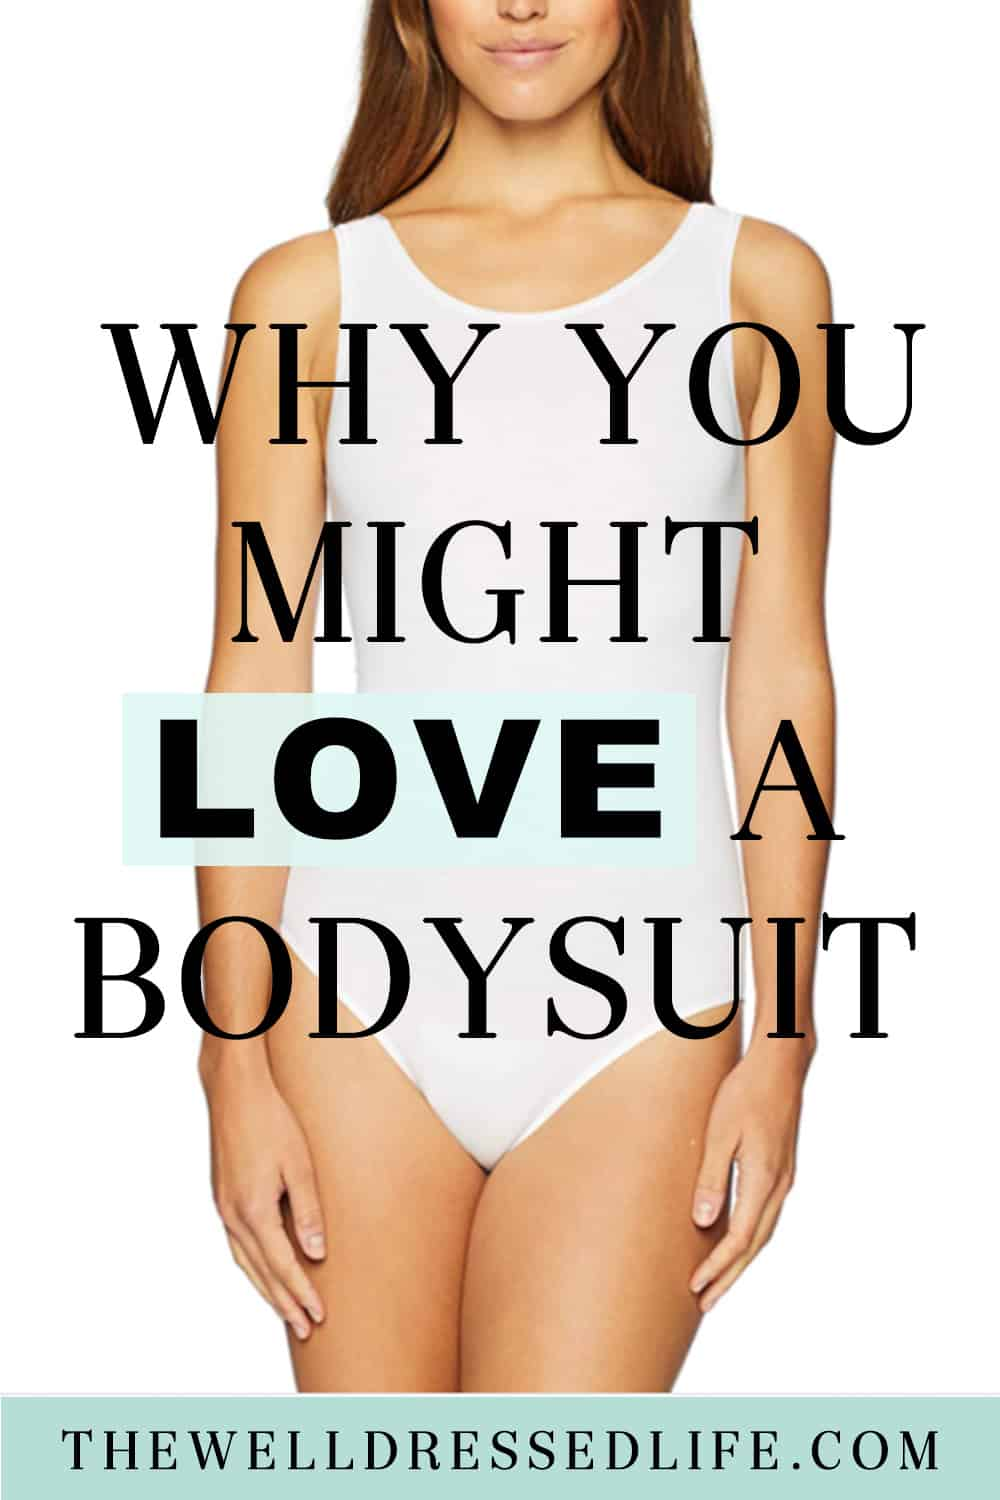 Why You Might LOVE a Bodysuit